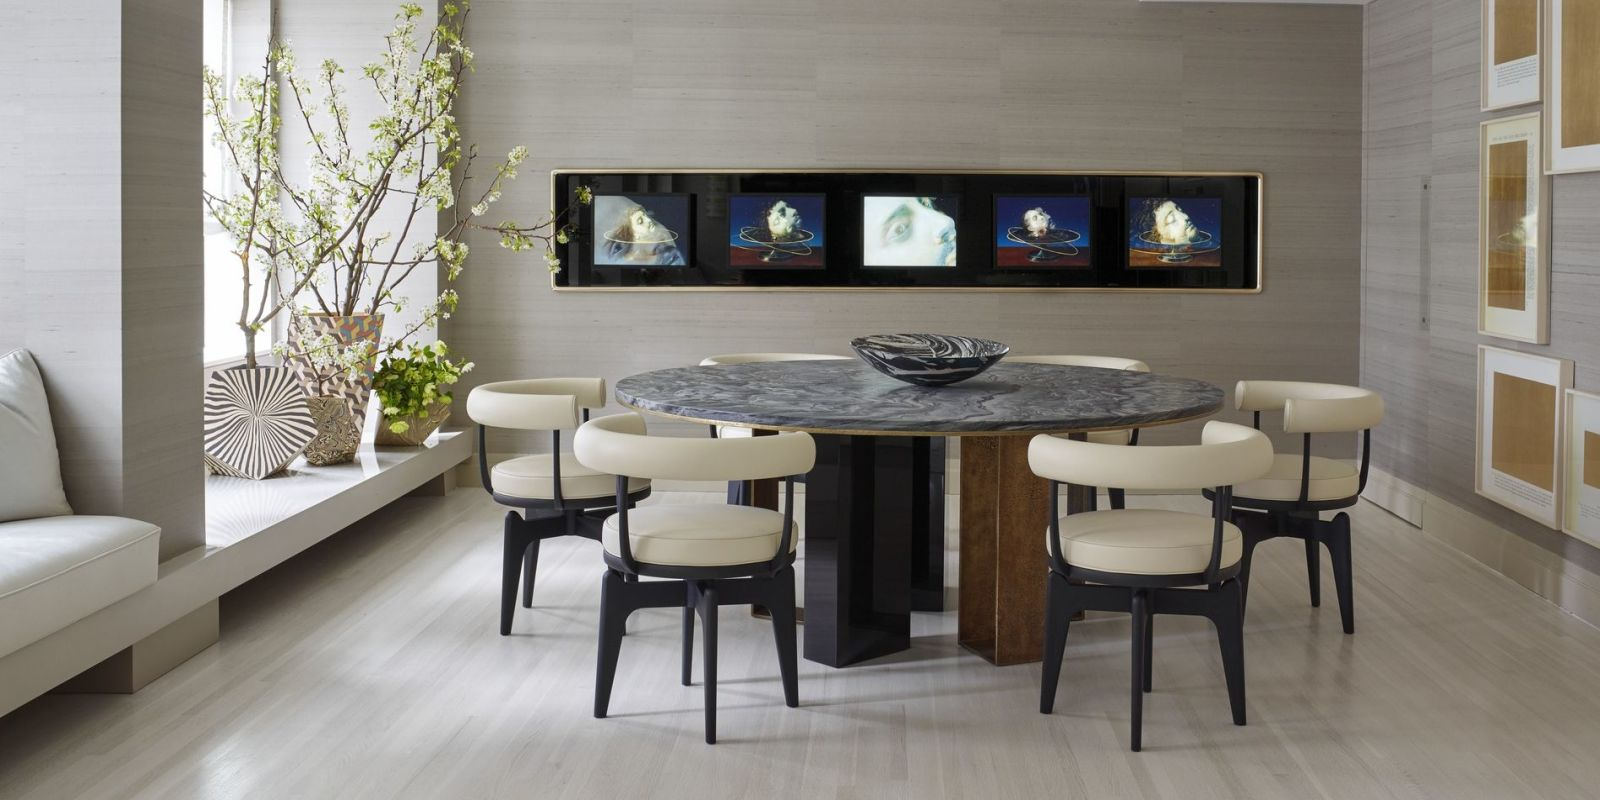 25 modern dining room decorating ideas contemporary for Dining room decor ideas